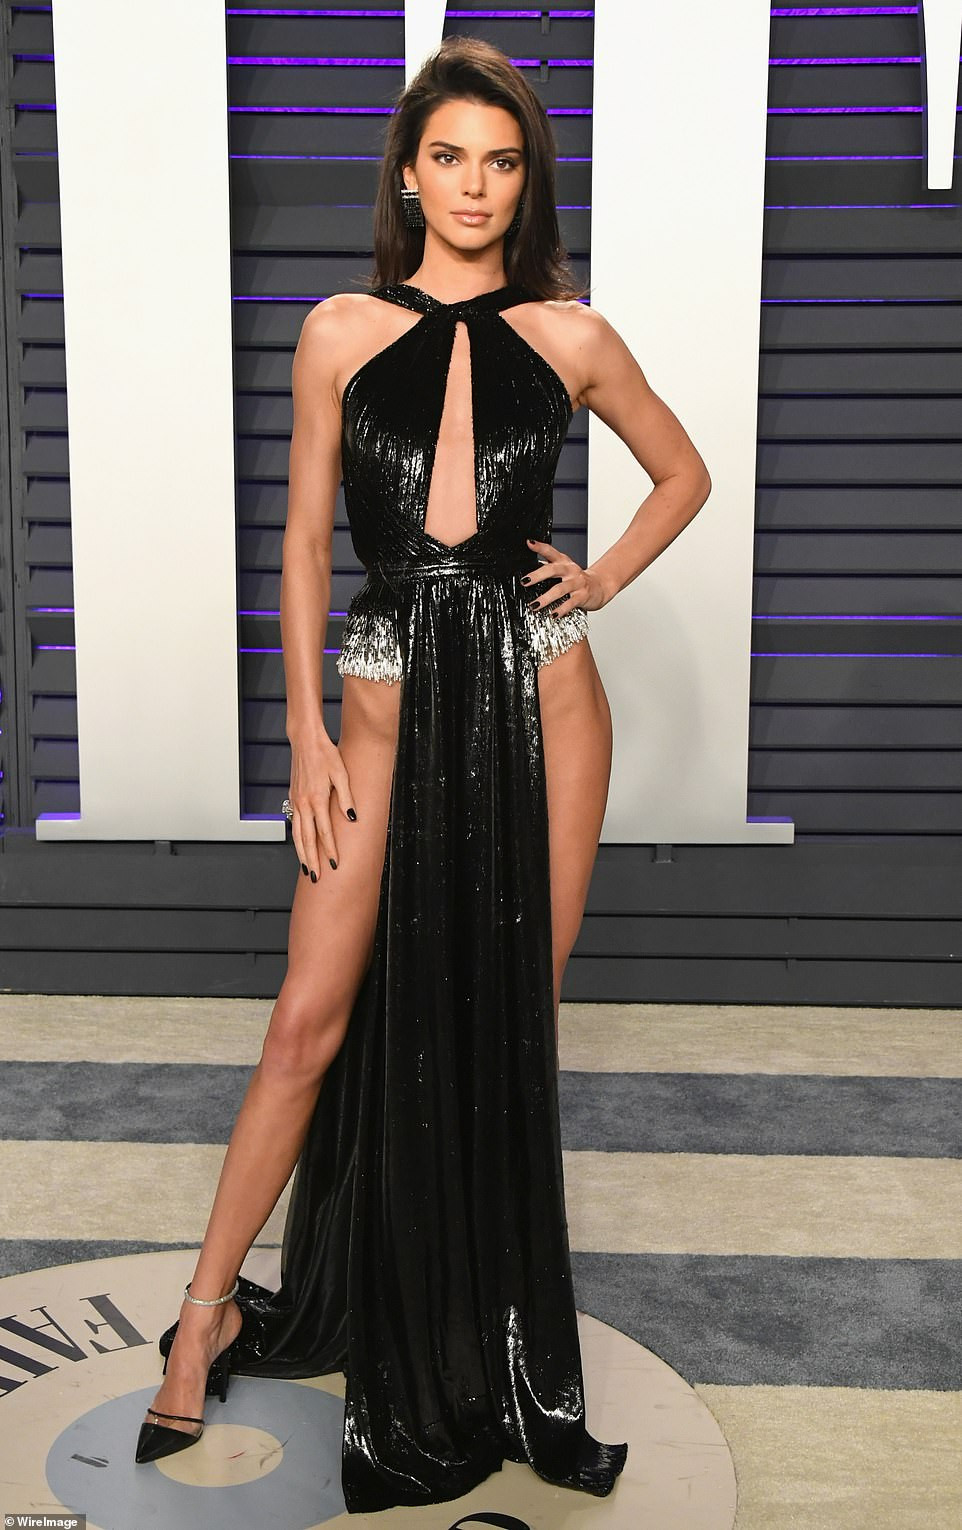 Kendall Jenner goes underwear-free in risky high-cut dress to Vanity Fair Oscar Party (Photos)